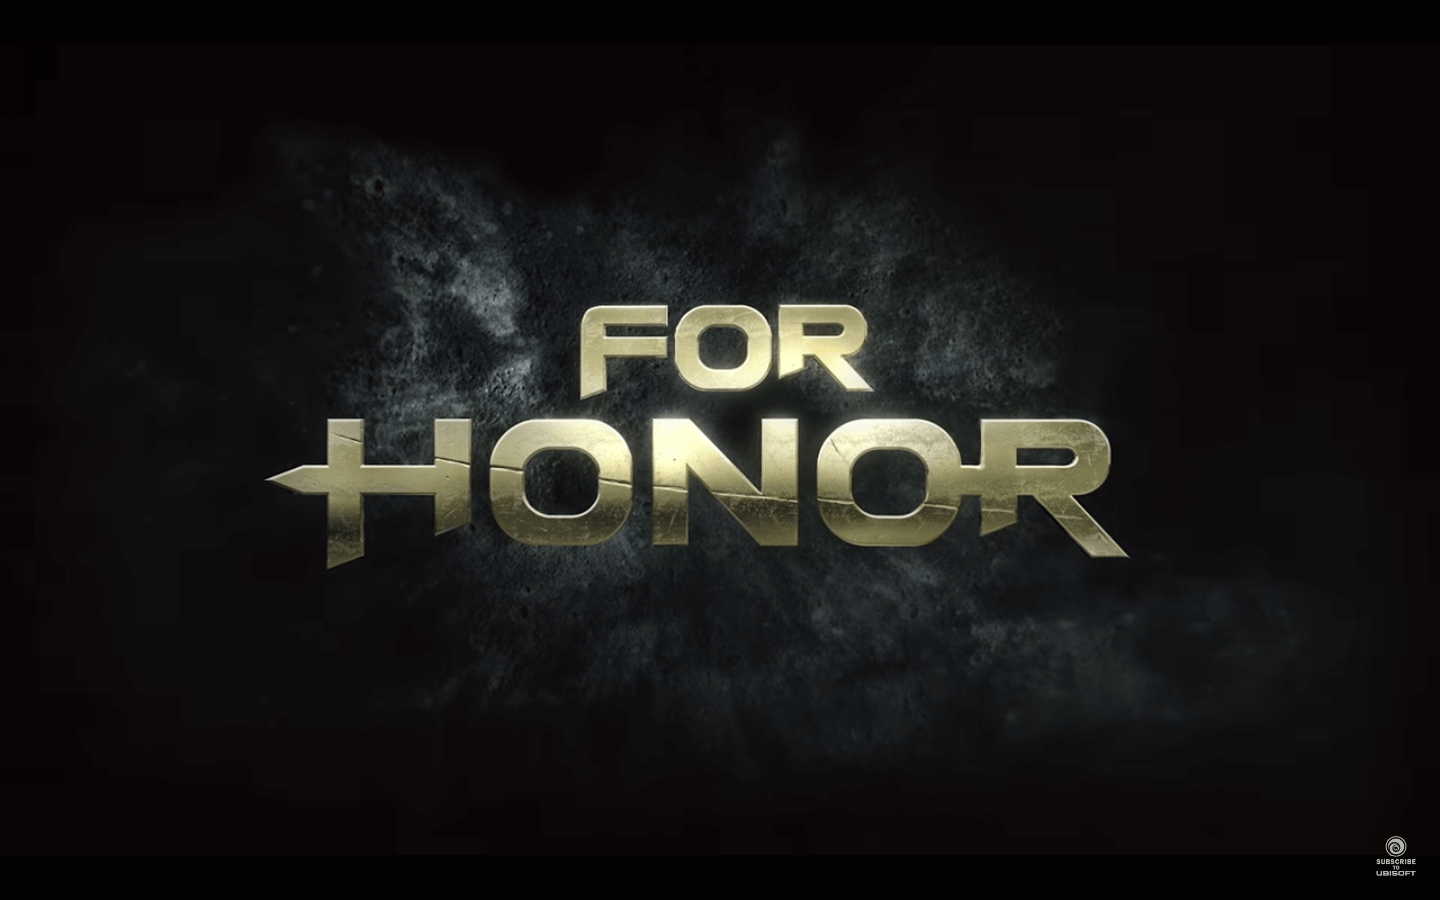 E3 2016: For Honor - Intense Gameplay & Trailers Shown